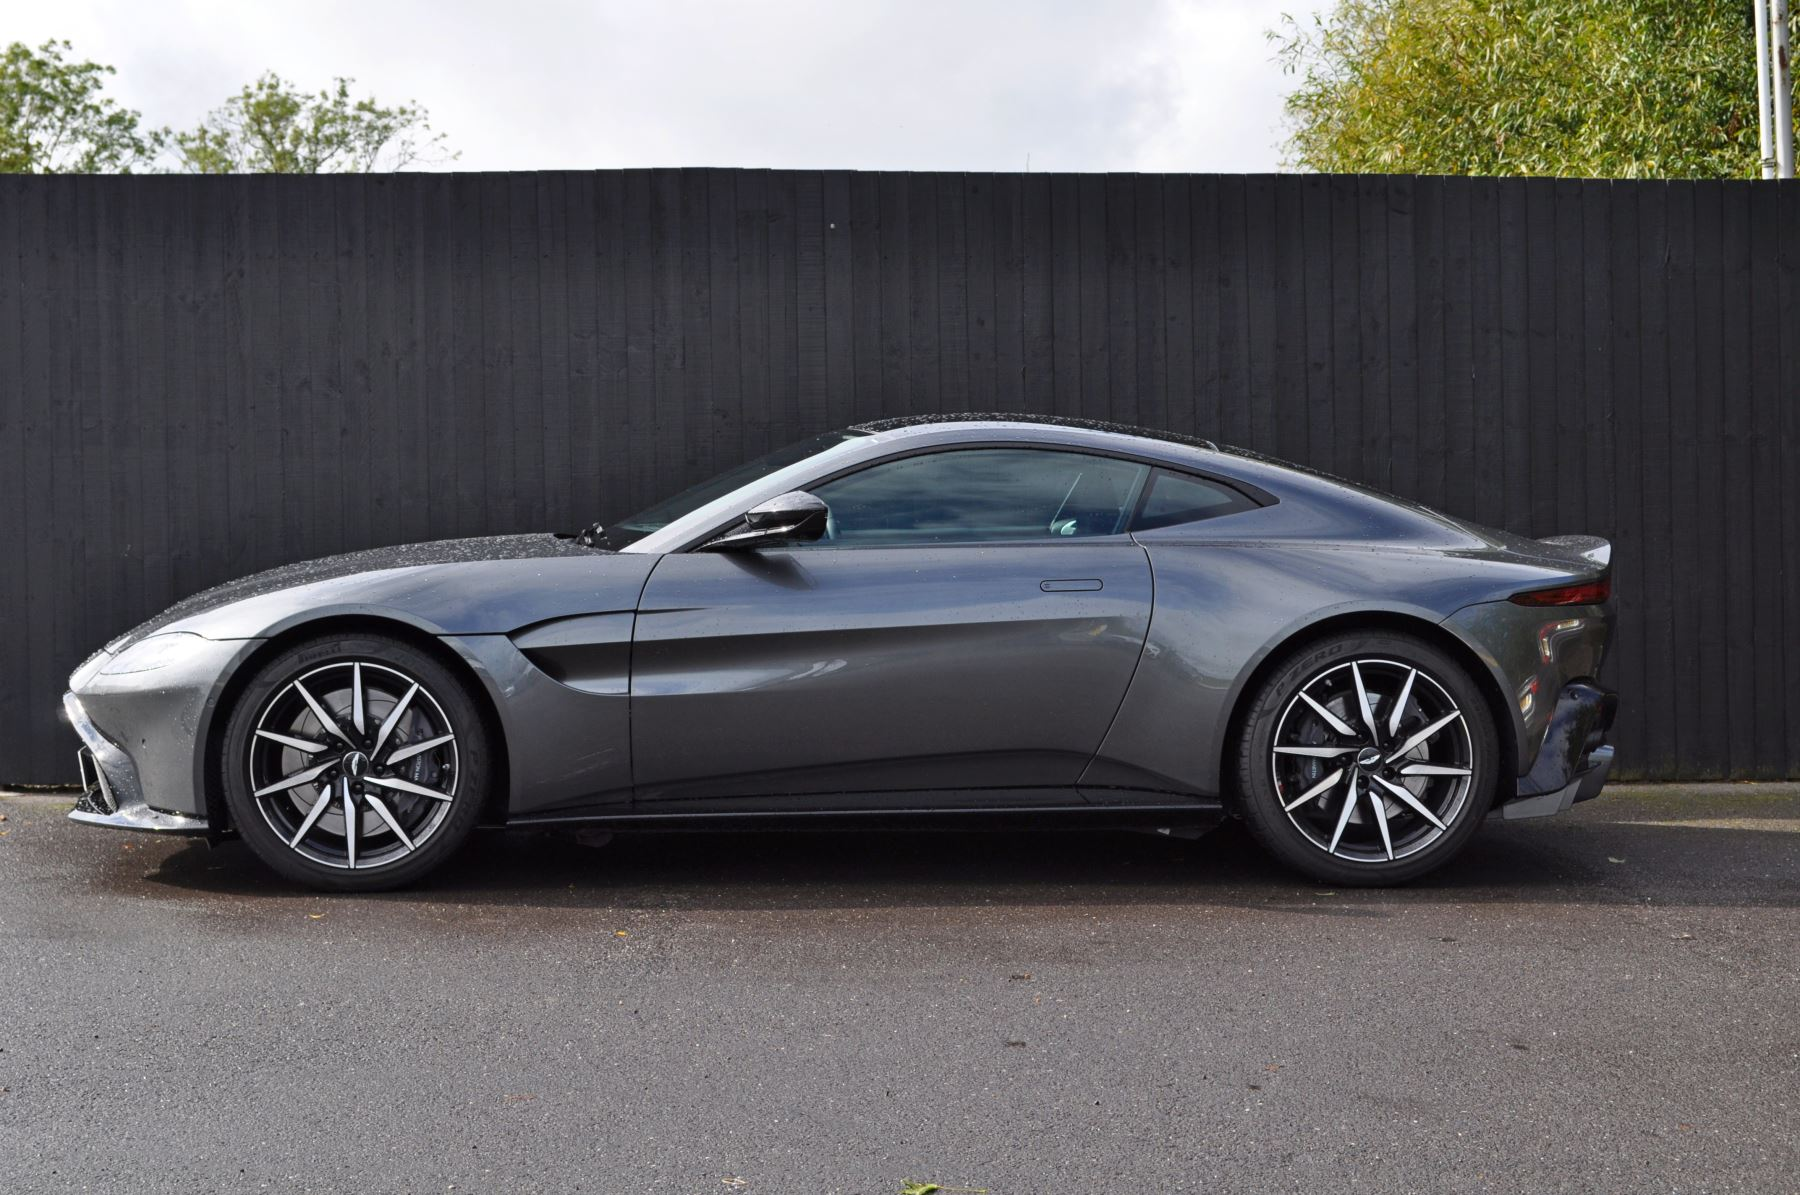 Aston Martin New Vantage 2dr ZF 8 Speed image 8